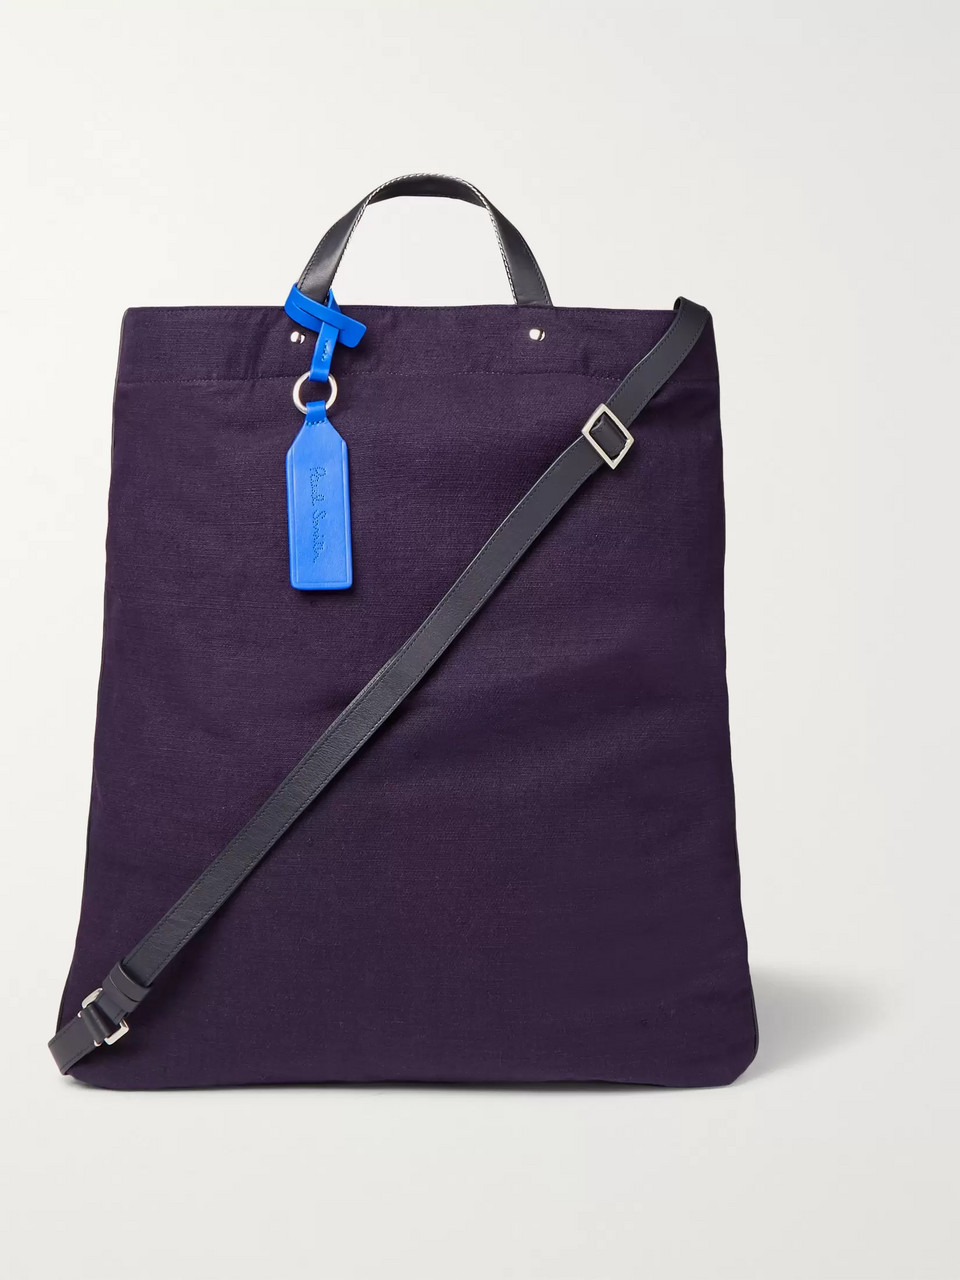 Paul Smith Leather-Trimmed Canvas Tote Bag